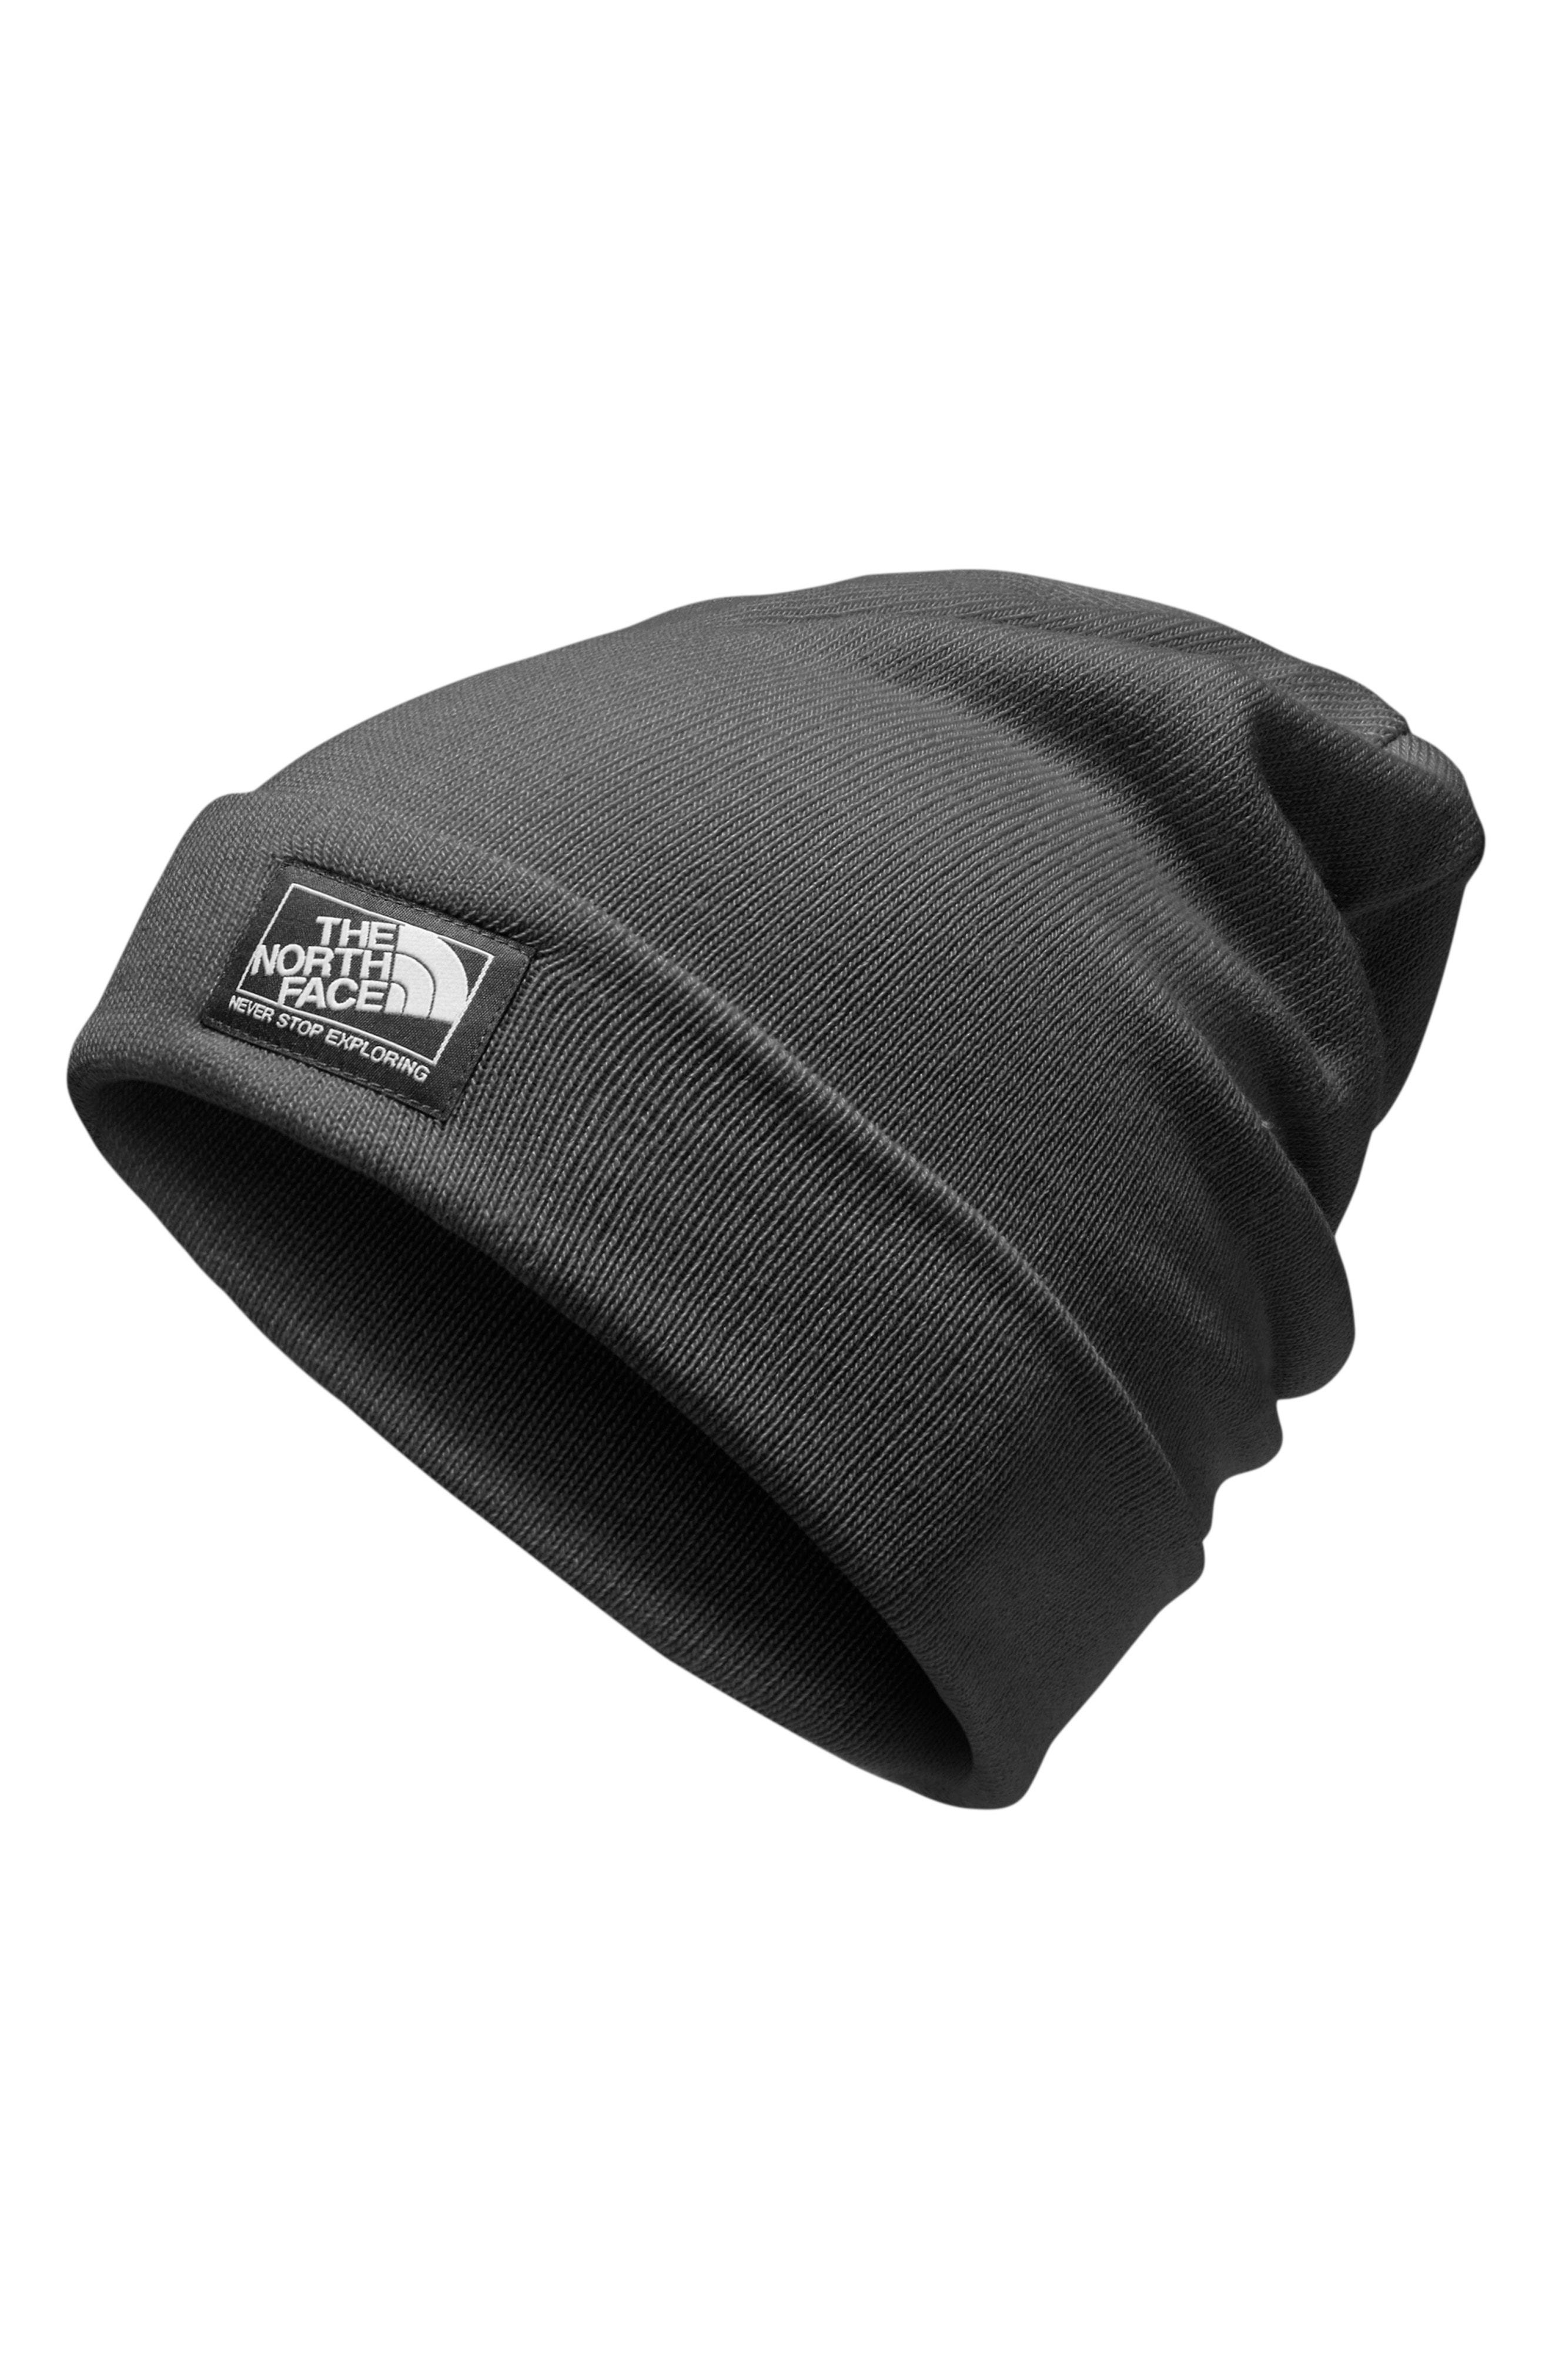 b3947cbc80d ... The North Face Dock Worker Beanie